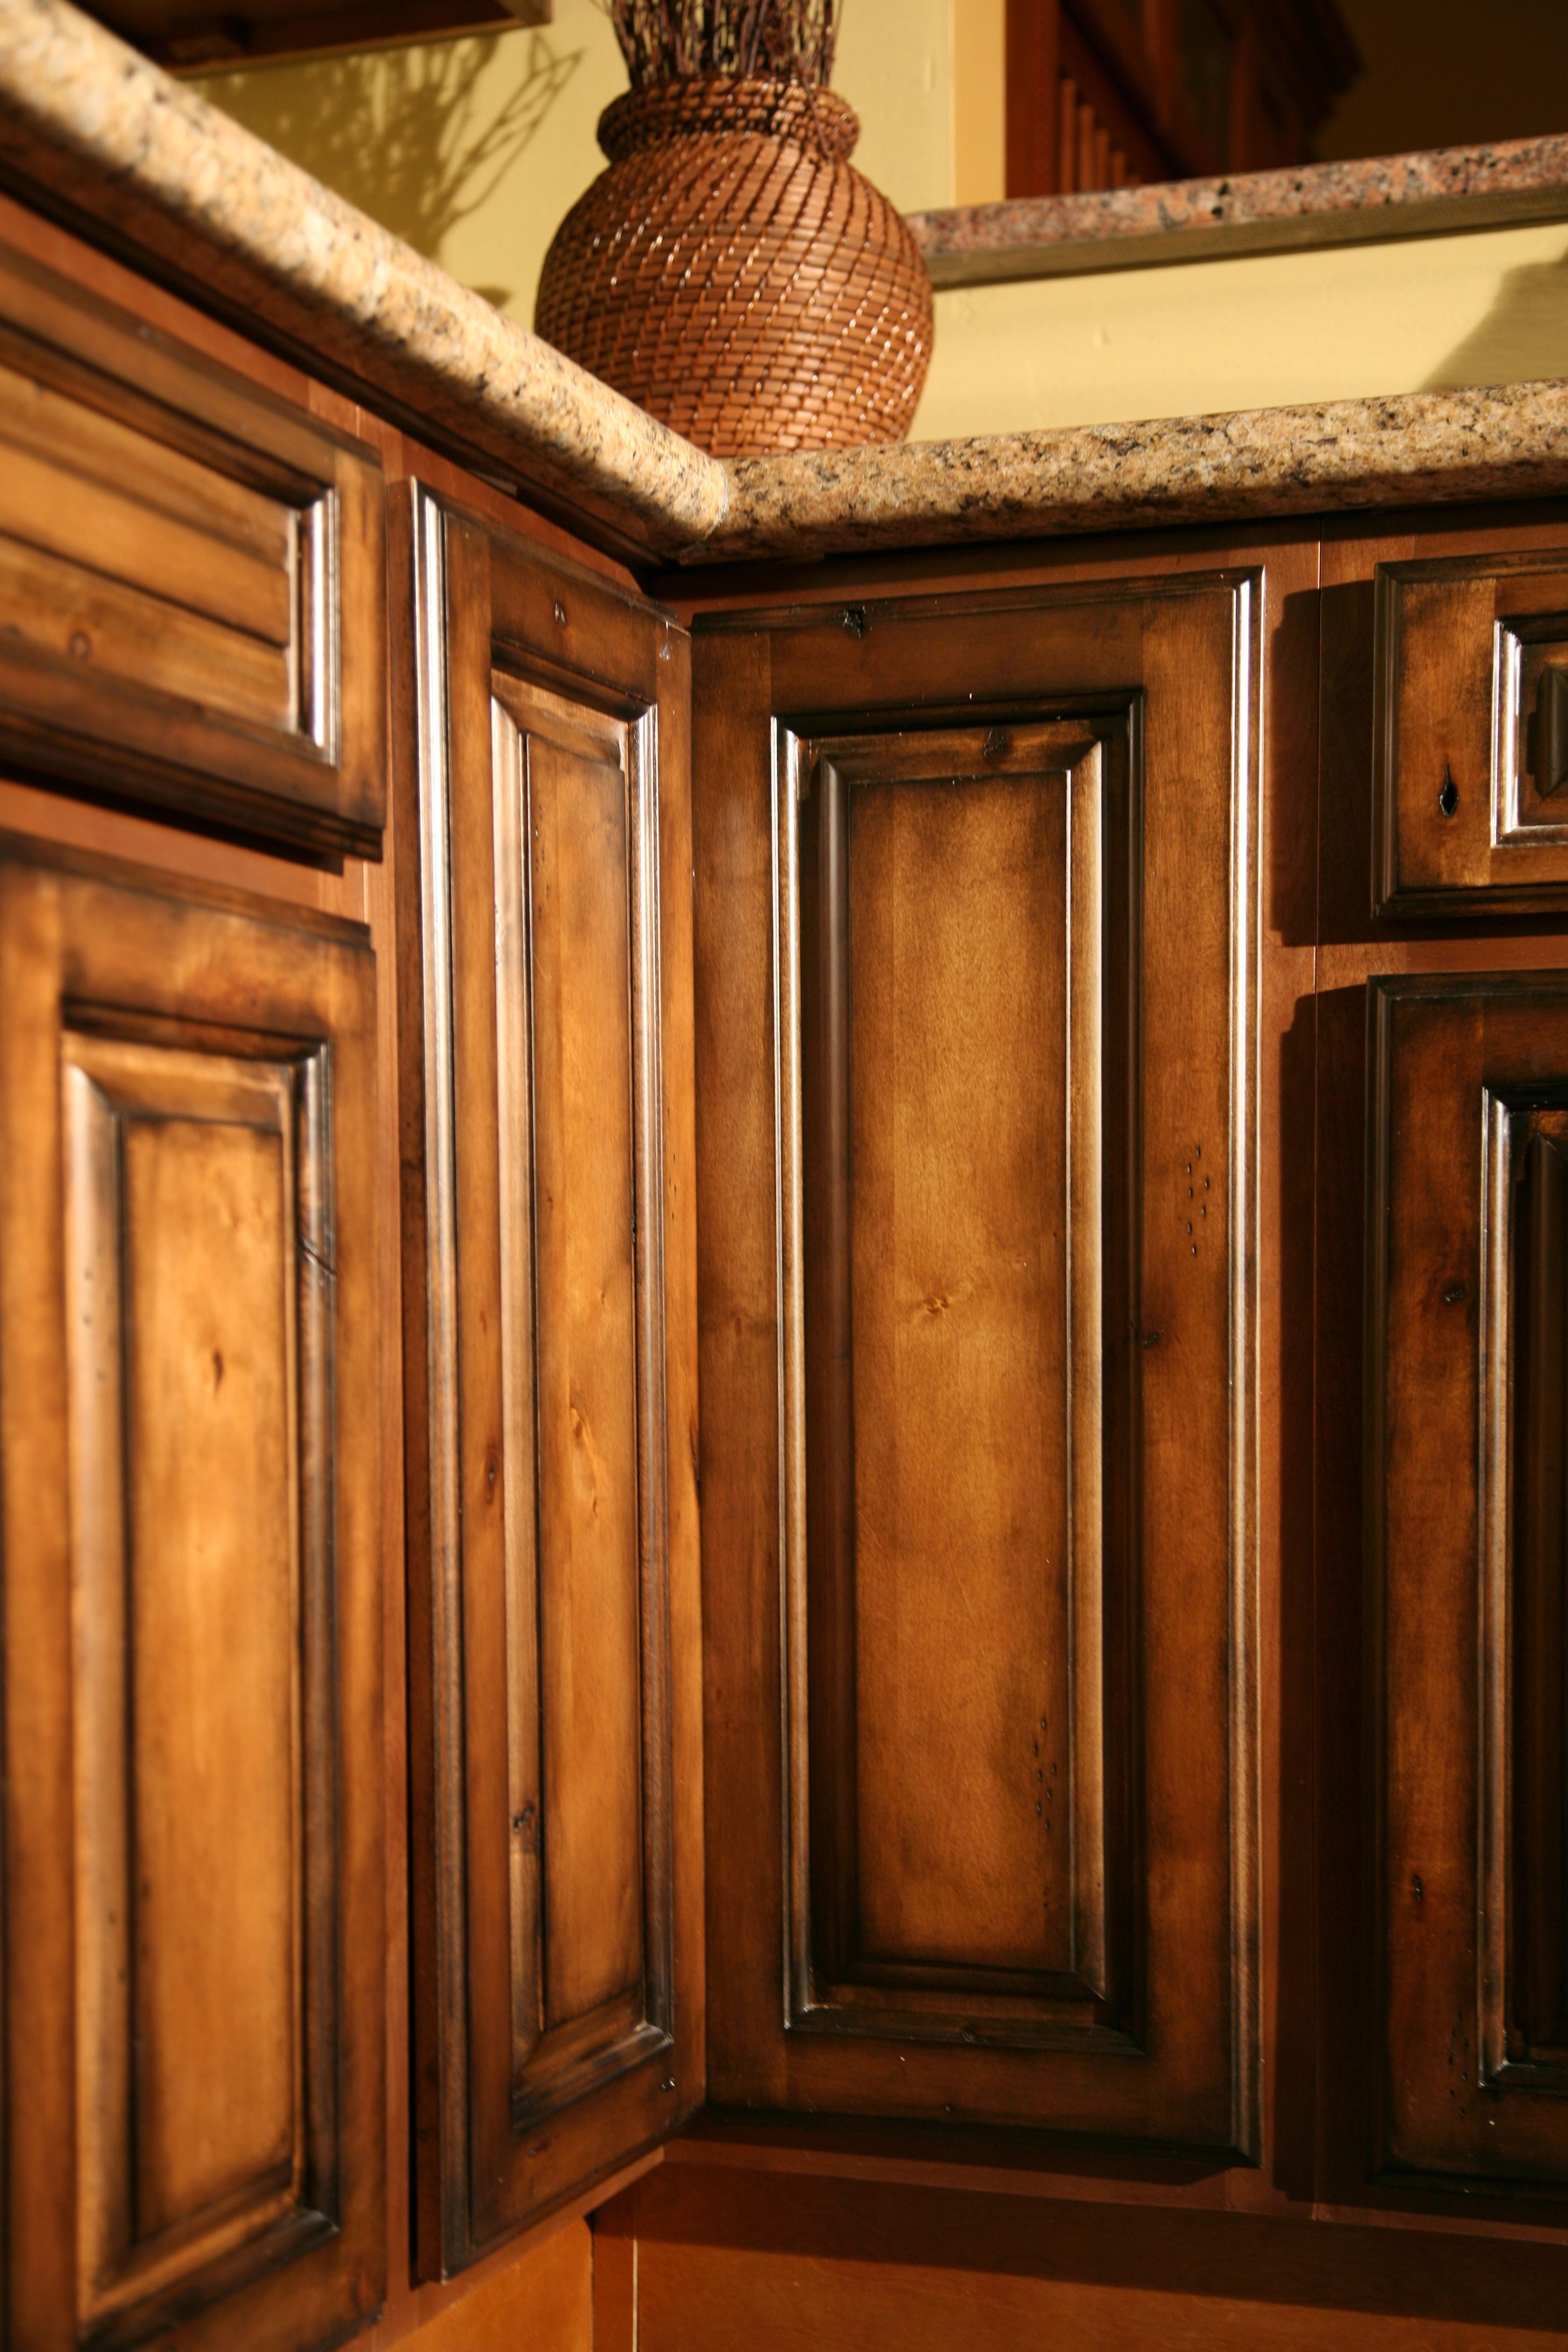 All Wood Kitchen Cabinets Air Vent Rustic Cabinet Doors Maple Glaze